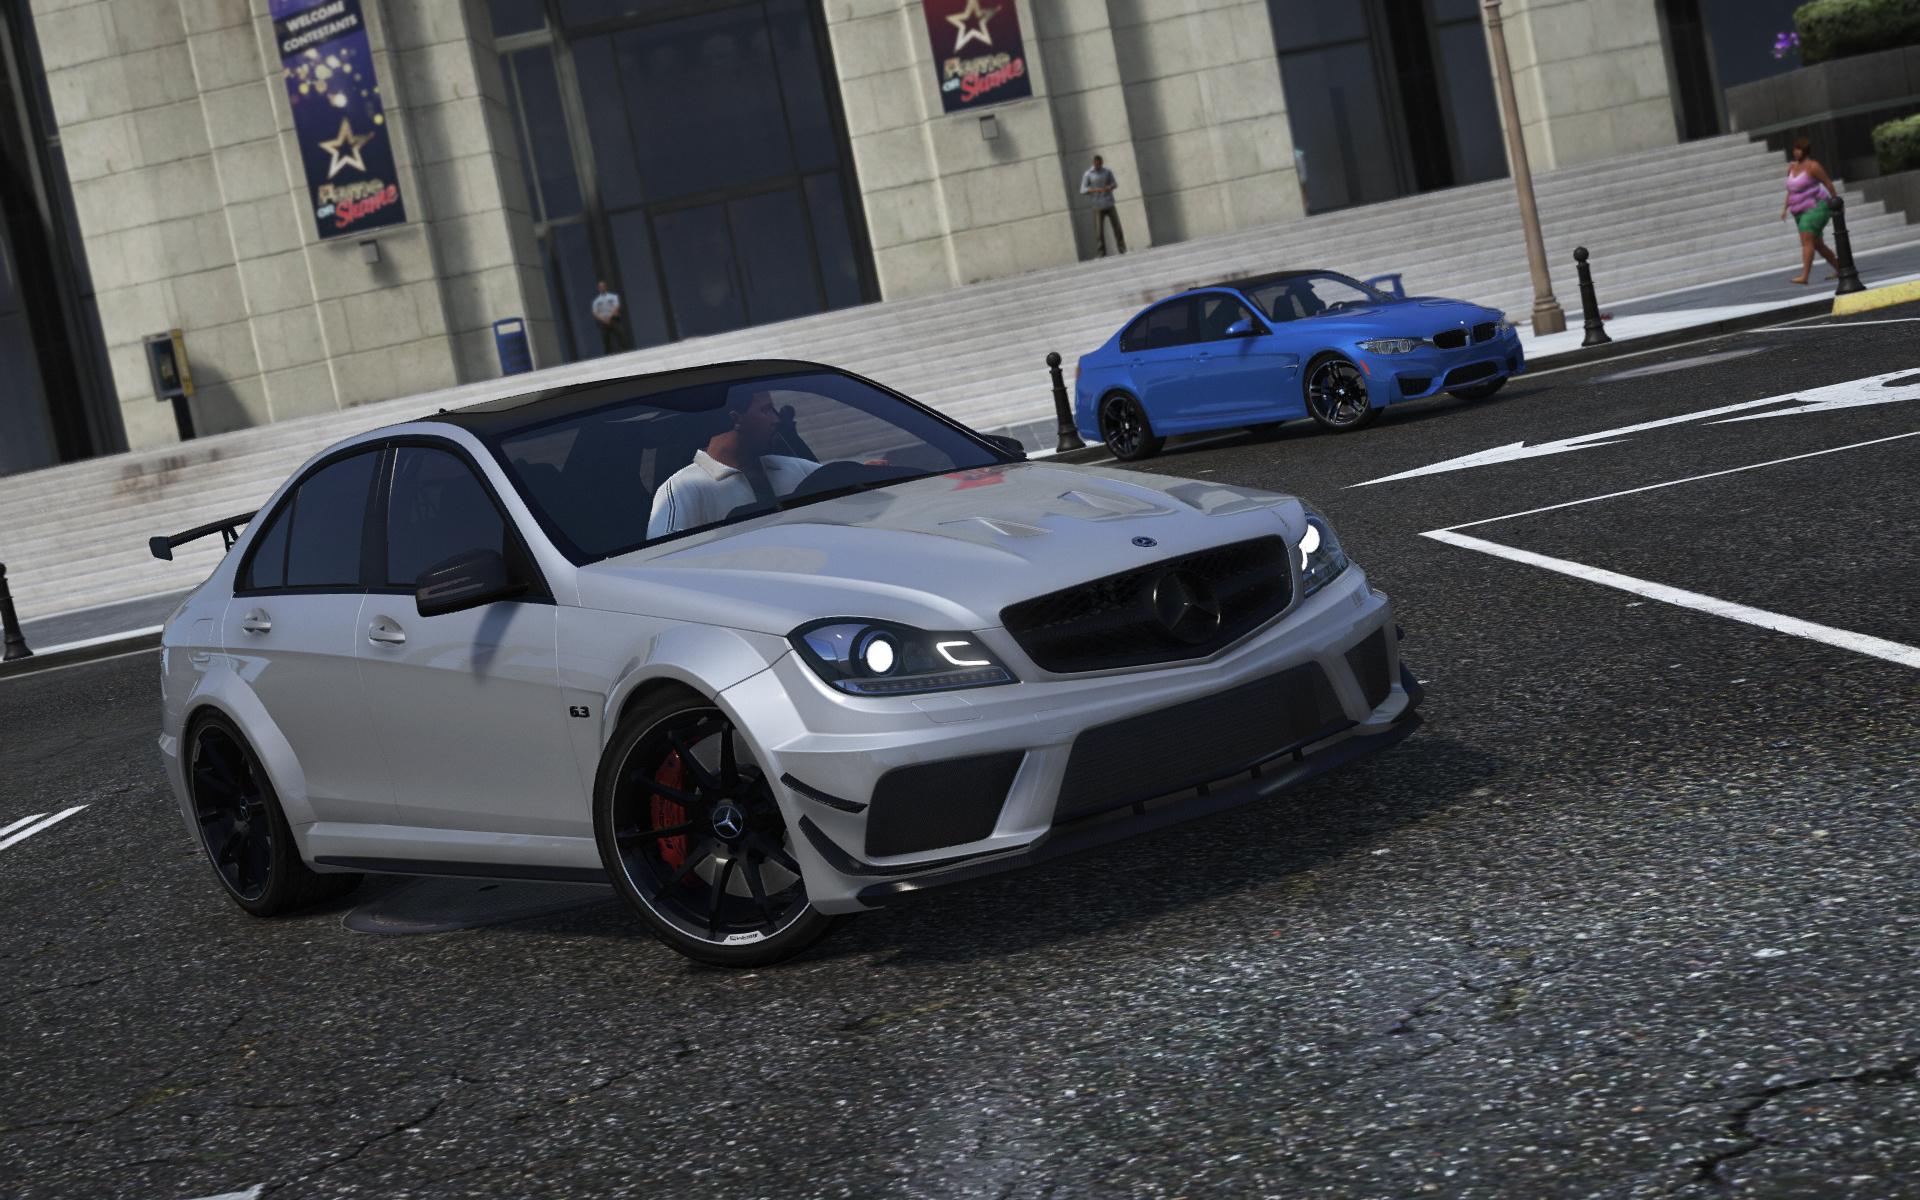 2013 Mercedes-AMG C63 (W204) Facelift [Add-On | Black Series